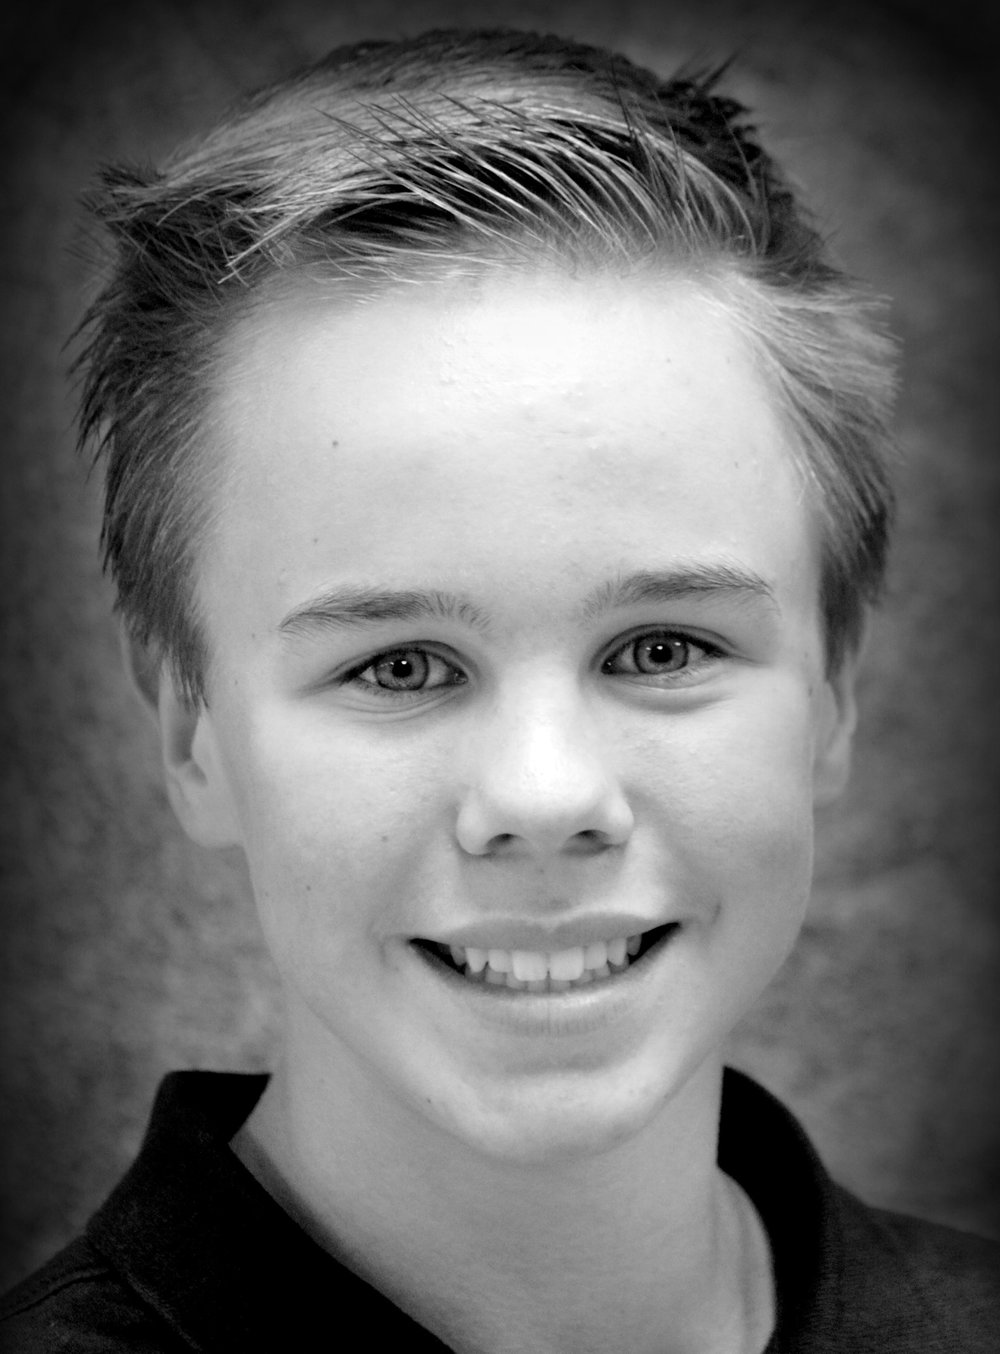 Percy  and  Blind School Student        // Ben Gerig   Ben is an 8th grader who has been involved in theater for several years, primarily through Fire and Light Academy. He has played Charlie in Charlie and the Chocolate Factory and Tabaqui in The Jungle Book. Ben has also been involved in the All for One productions of A Laura Ingalls Wilder Christmas and The Wind in the Willows. In addition to acting, Ben loves anything related to sports, especially tennis and Detroit Tigers baseball.